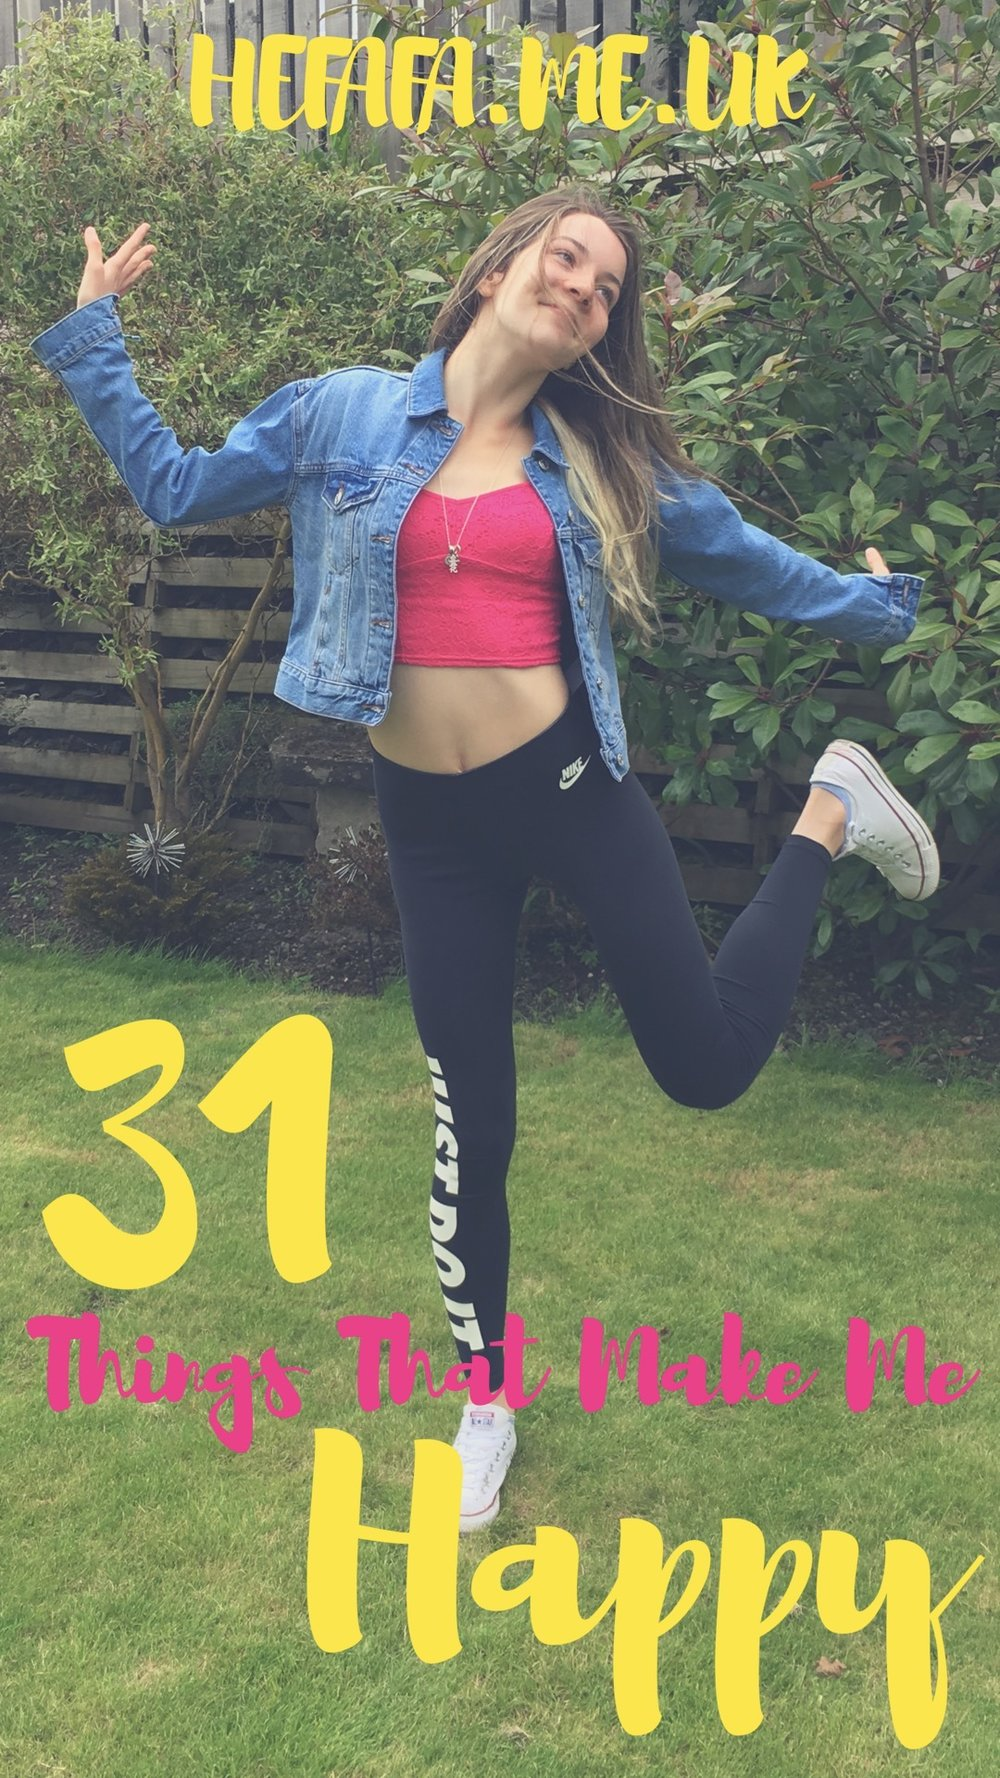 31 Things That Make Me Happy - Heather Rowland on hefafa.me.uk  Published 25th August 2017